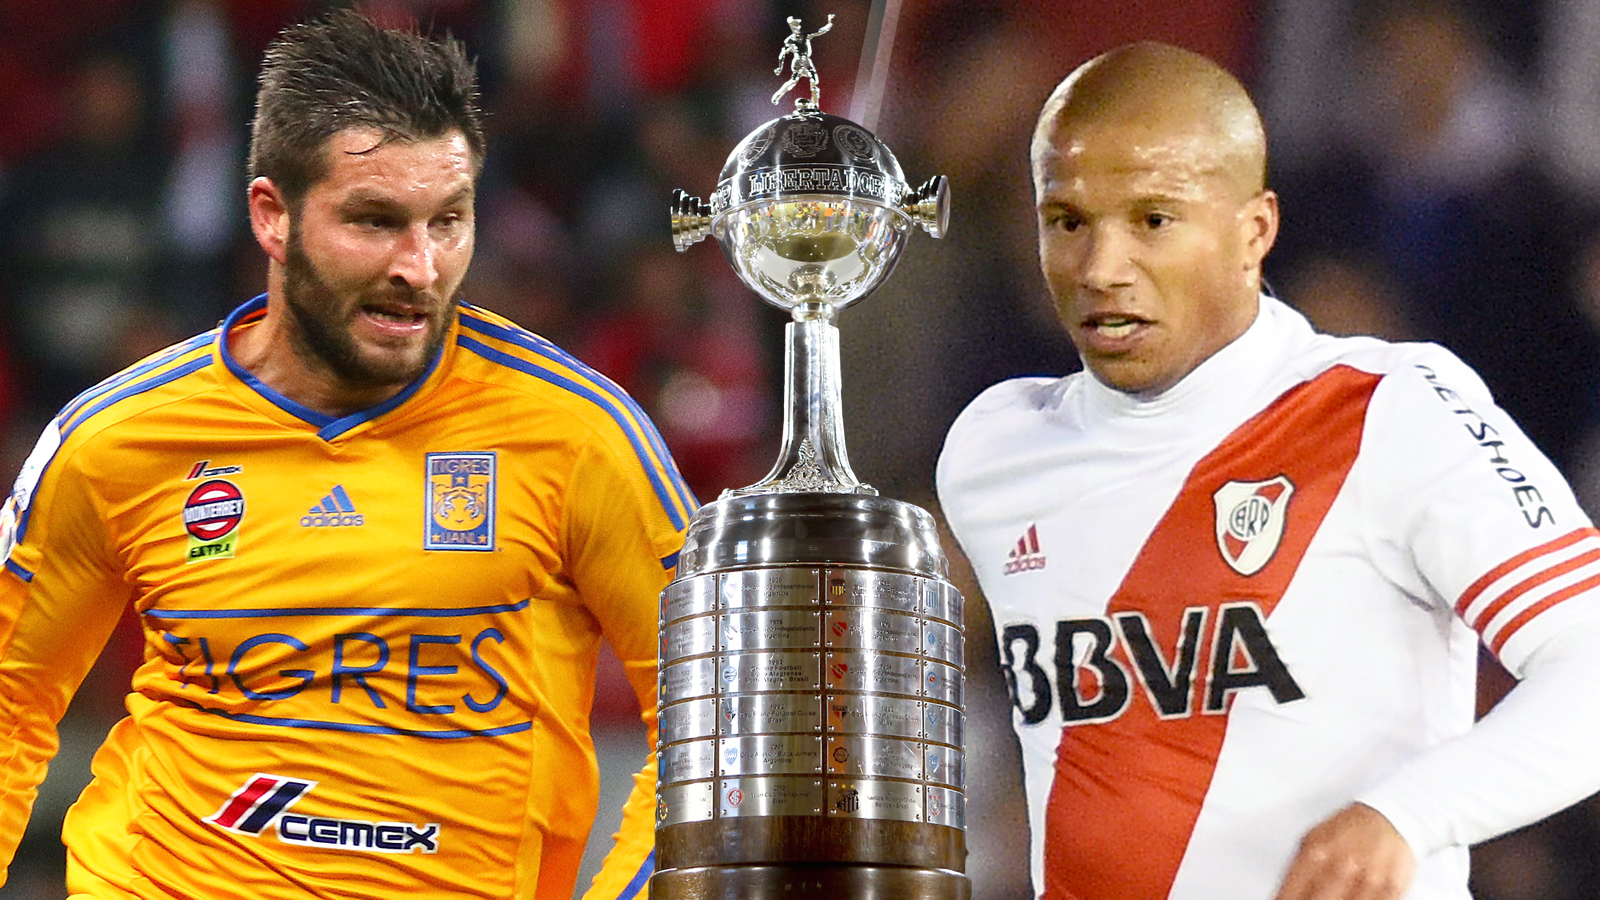 Tigres UANL visit River Plate with Copa Libertadores on the line